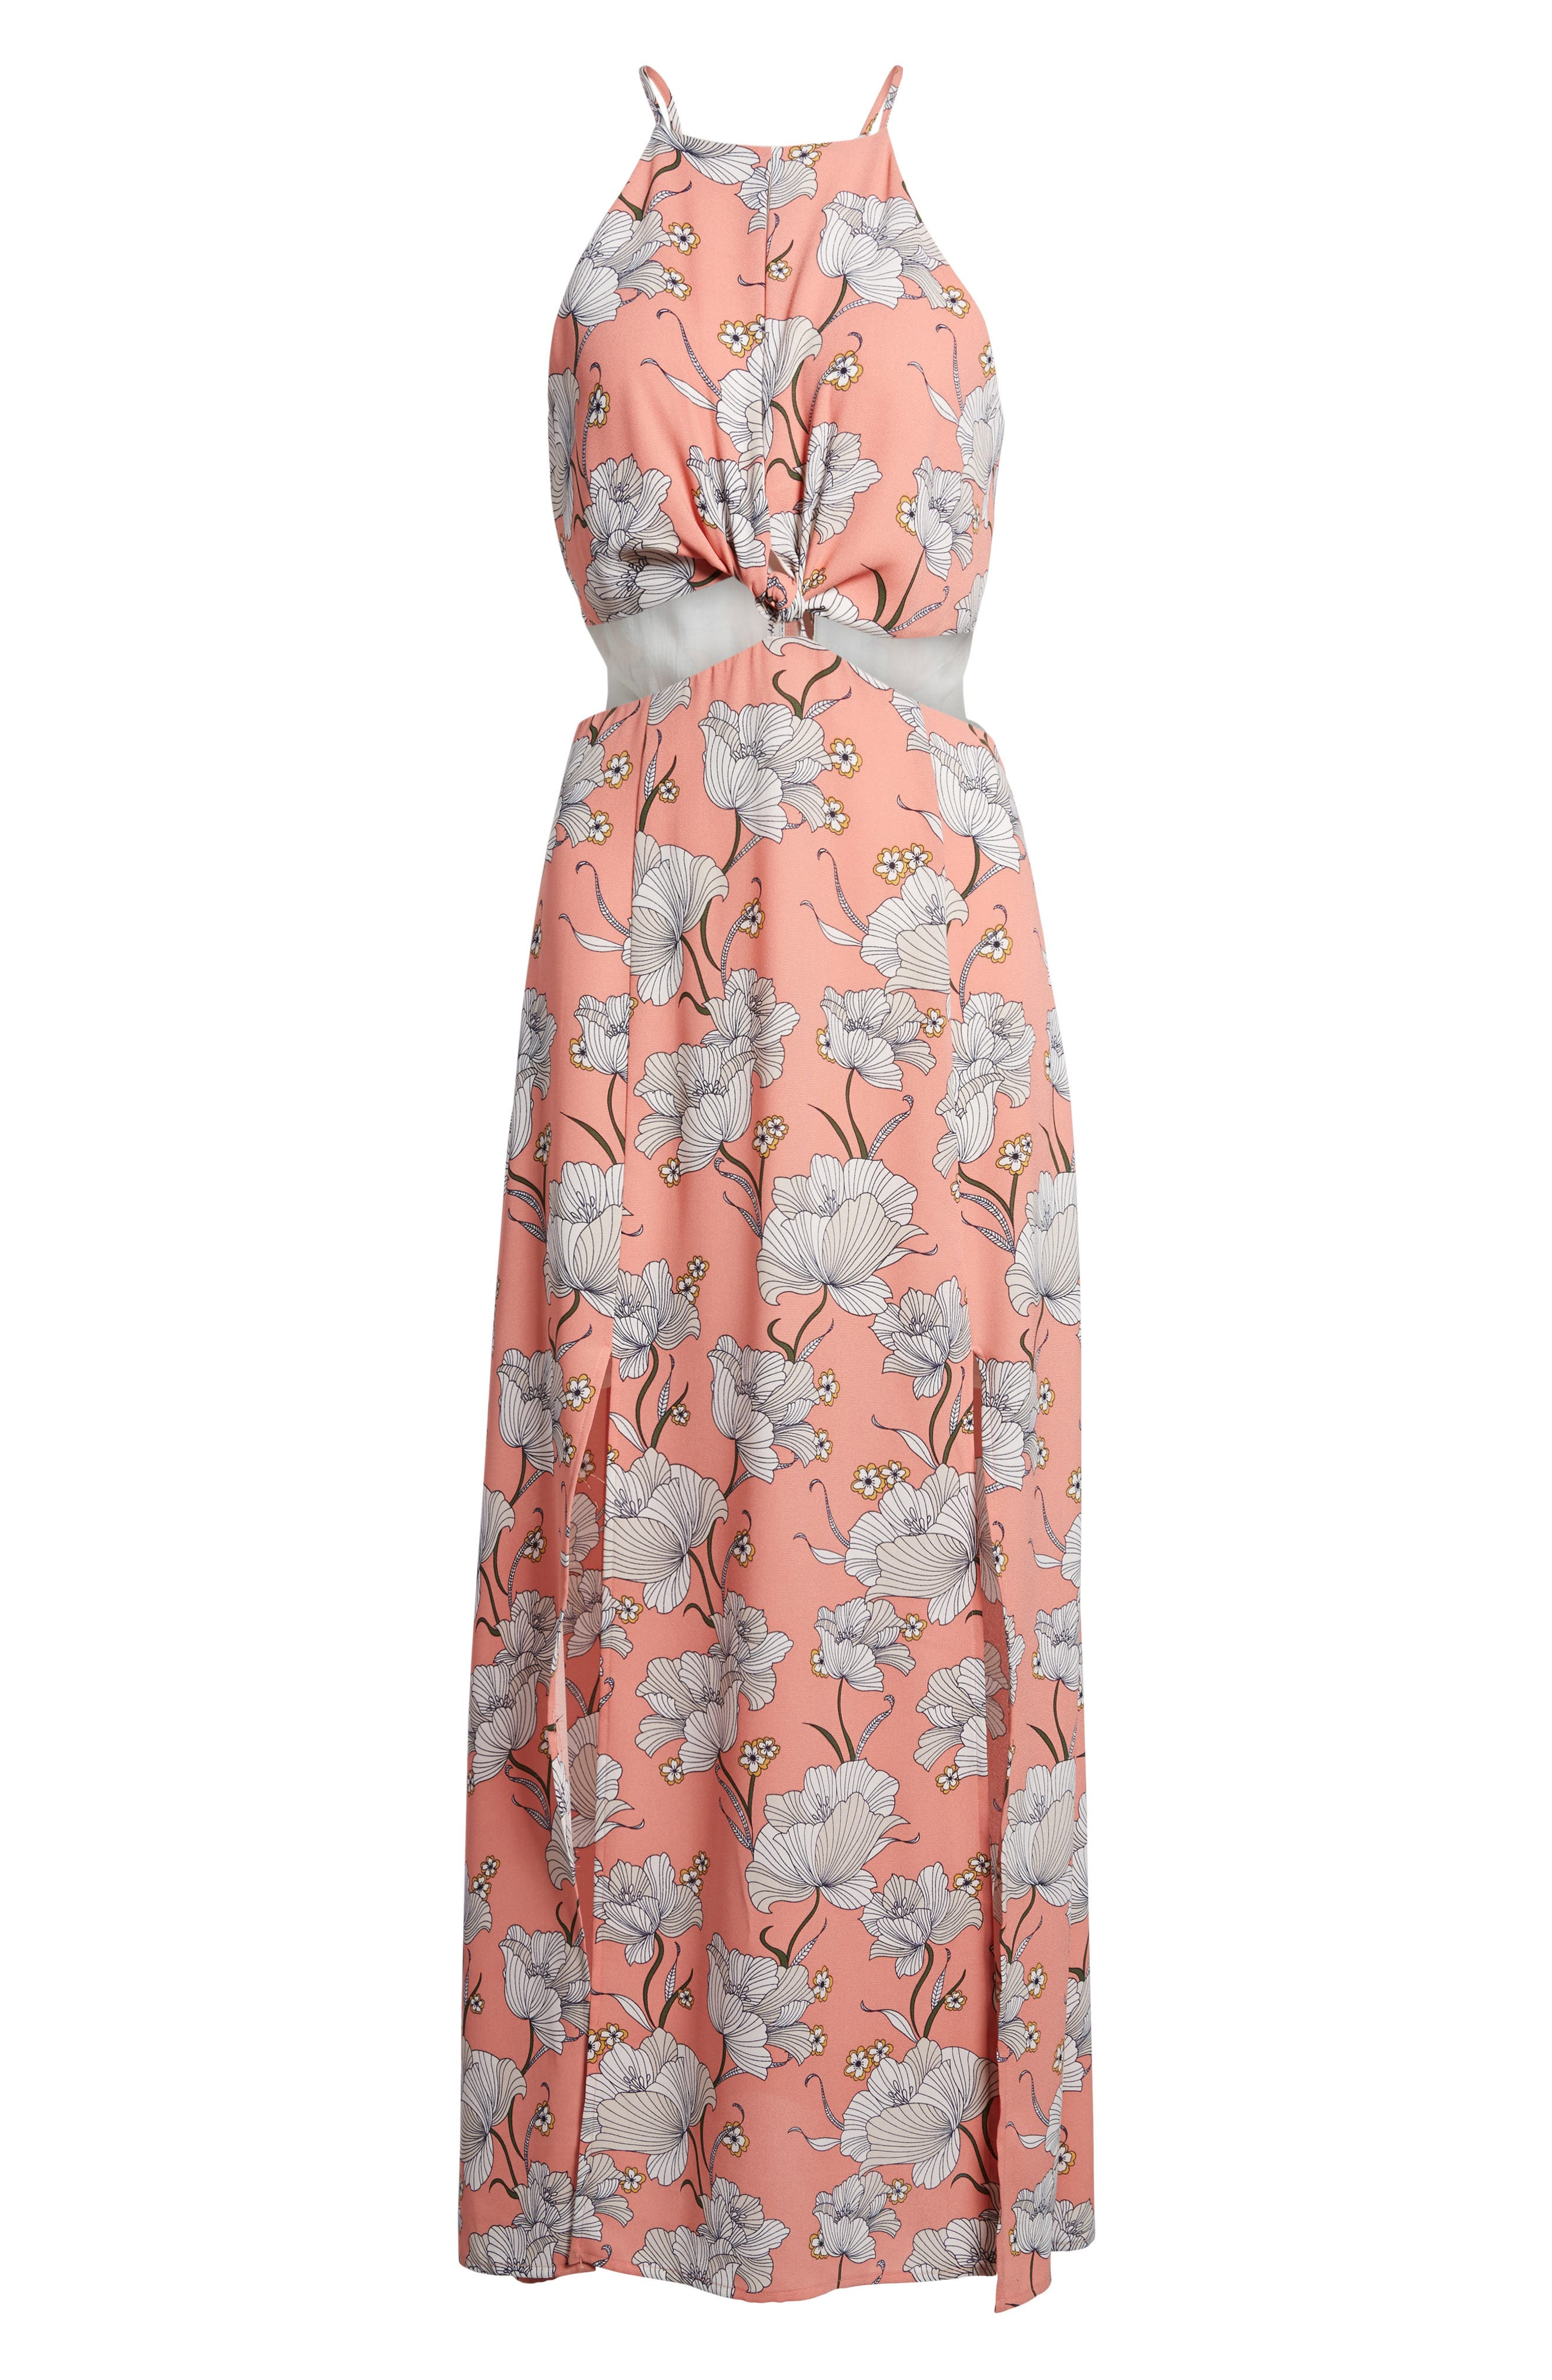 Floral Cutout Maxi Dress,                             Alternate thumbnail 6, color,                             Pink Floral